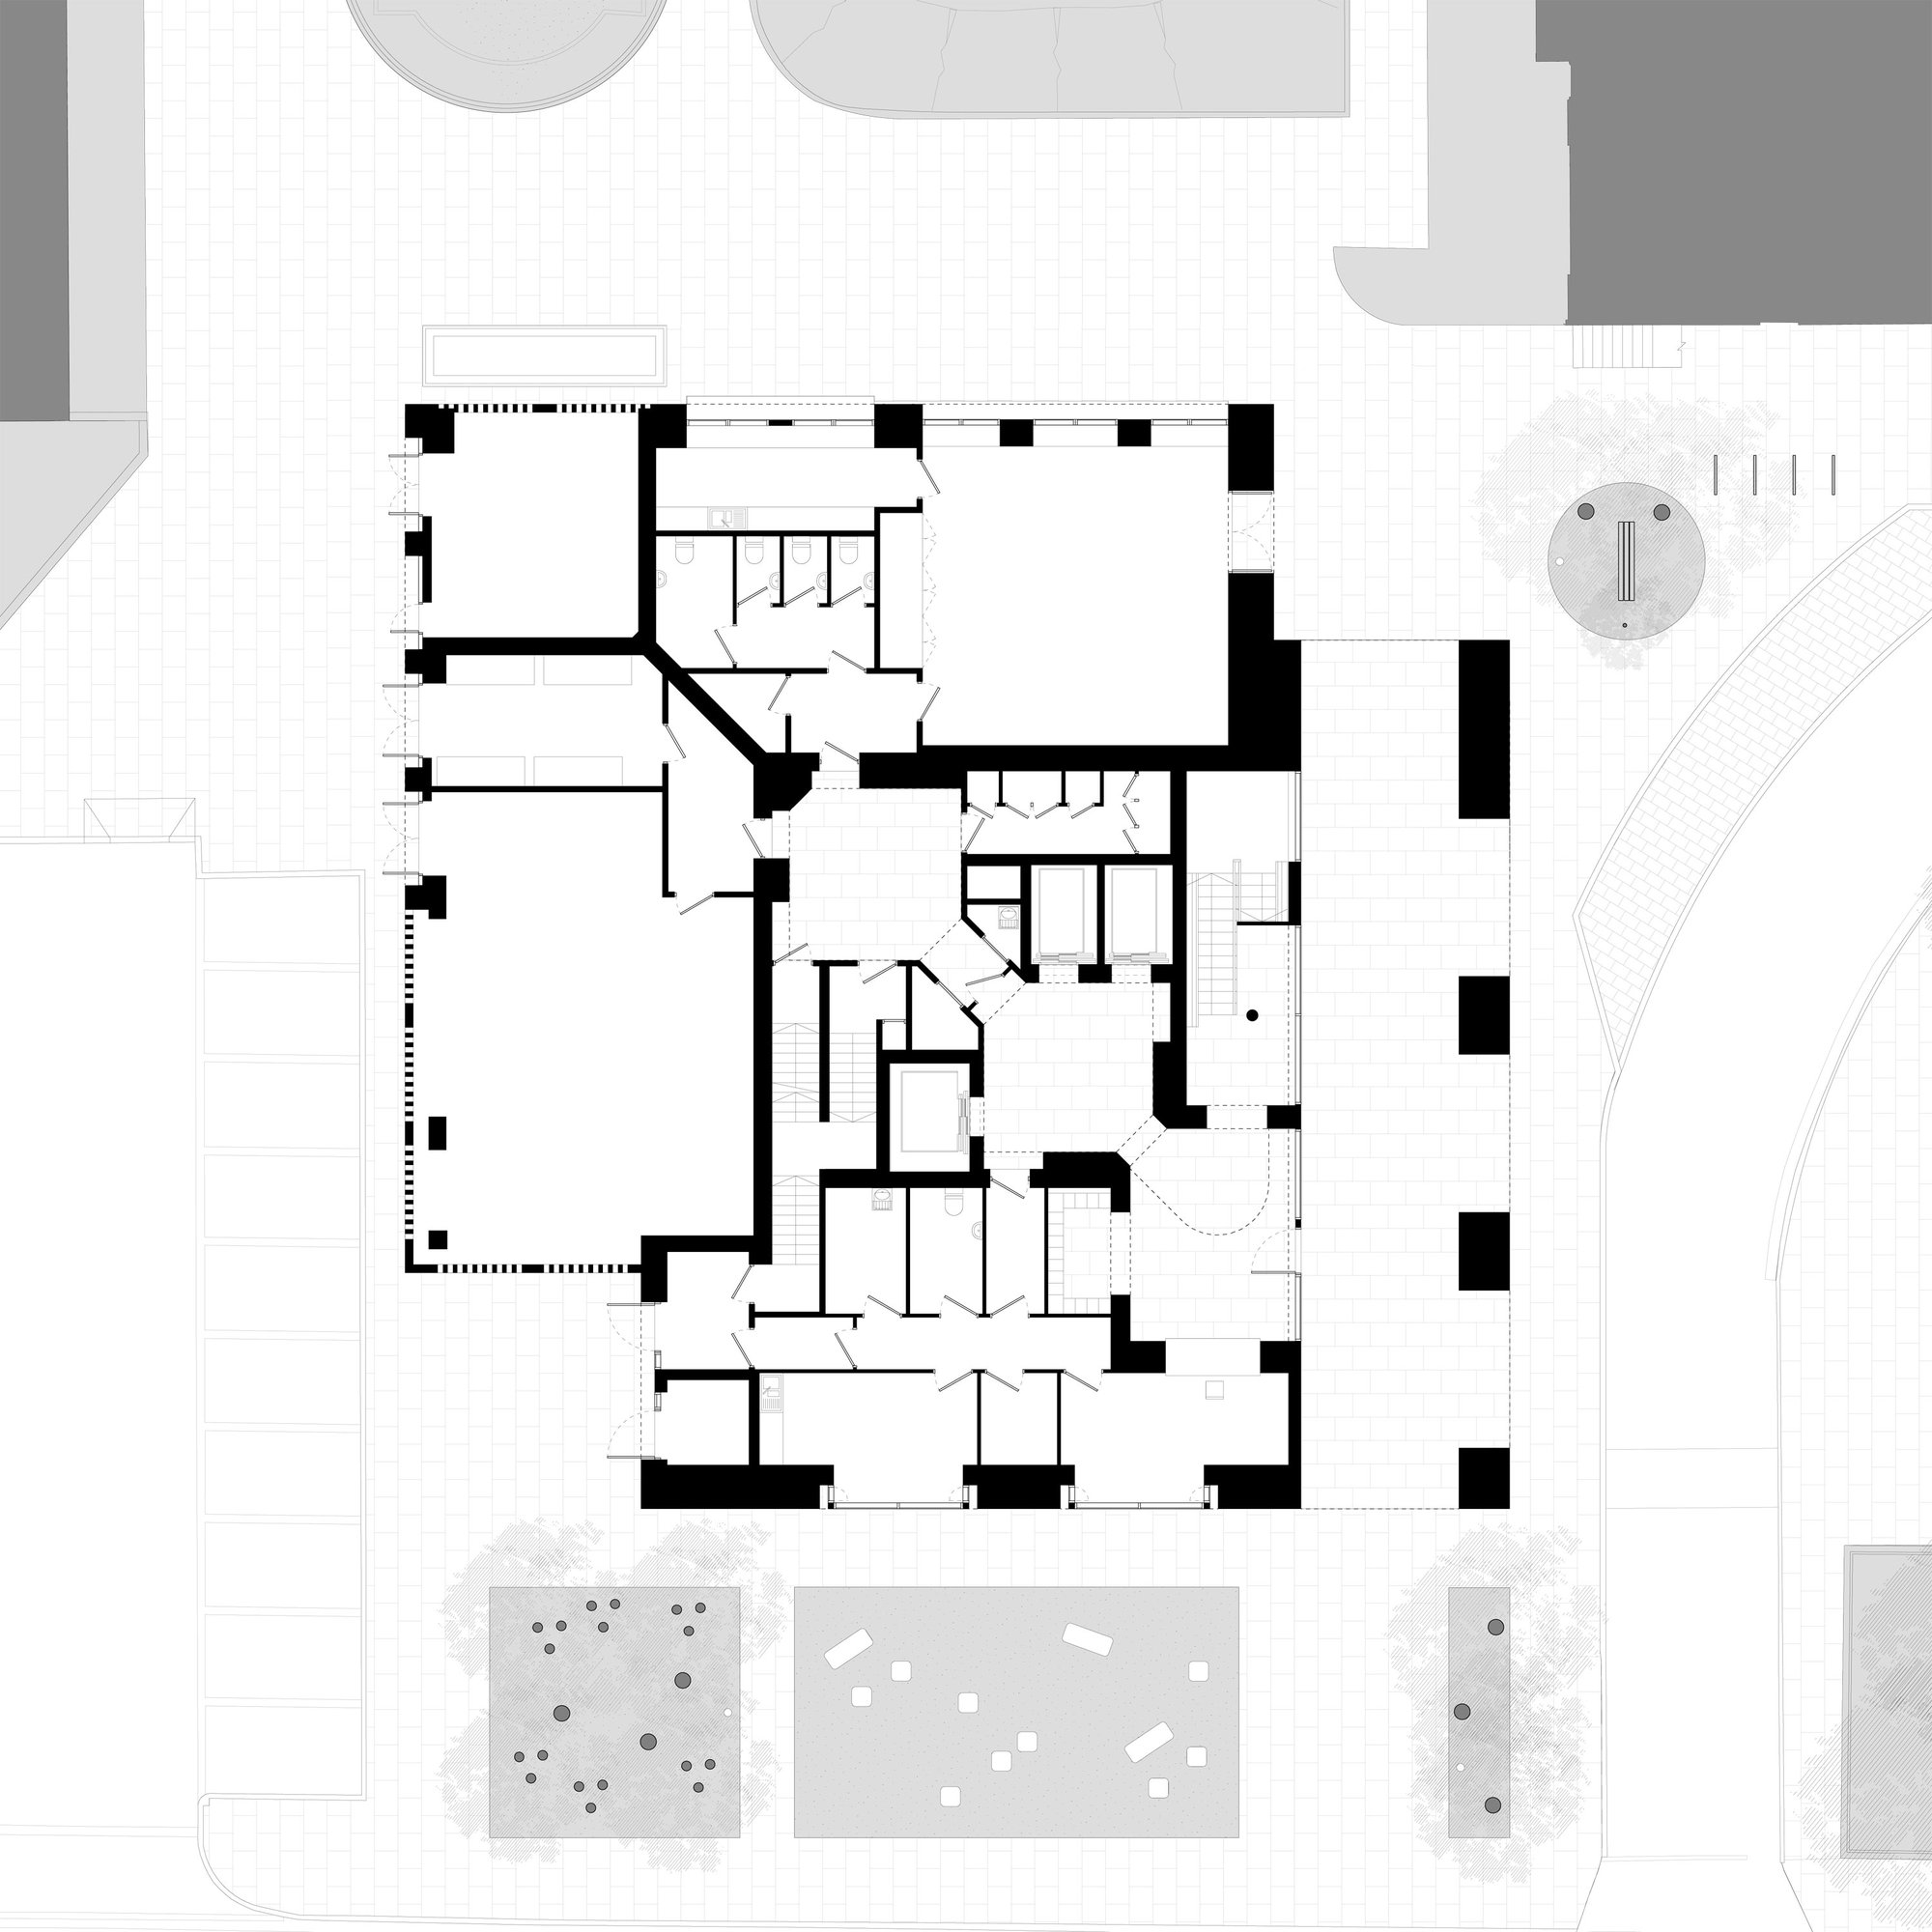 9_1307_GroundFloorPlan_170511.jpg